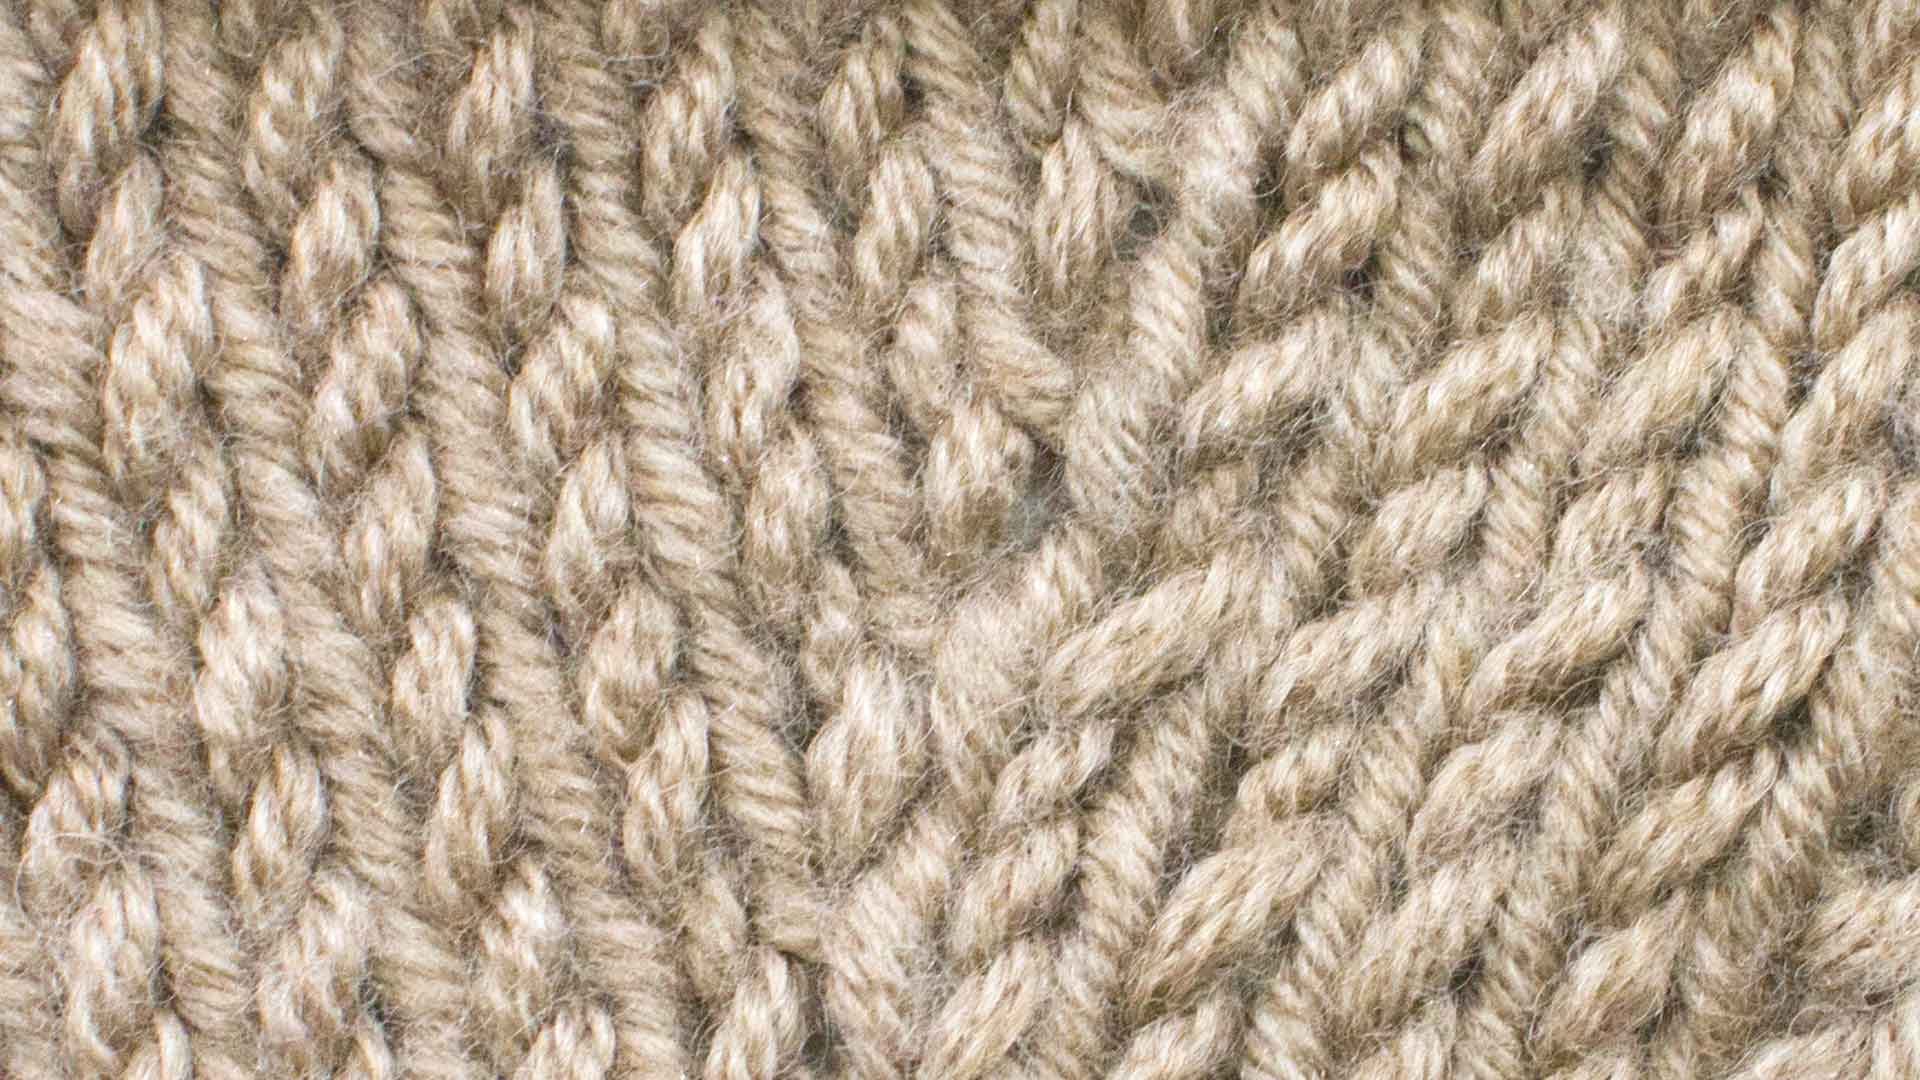 Knitting Stitches M1l : Make One Left Increase (M1L) :: Knitting :: New Stitch a Day